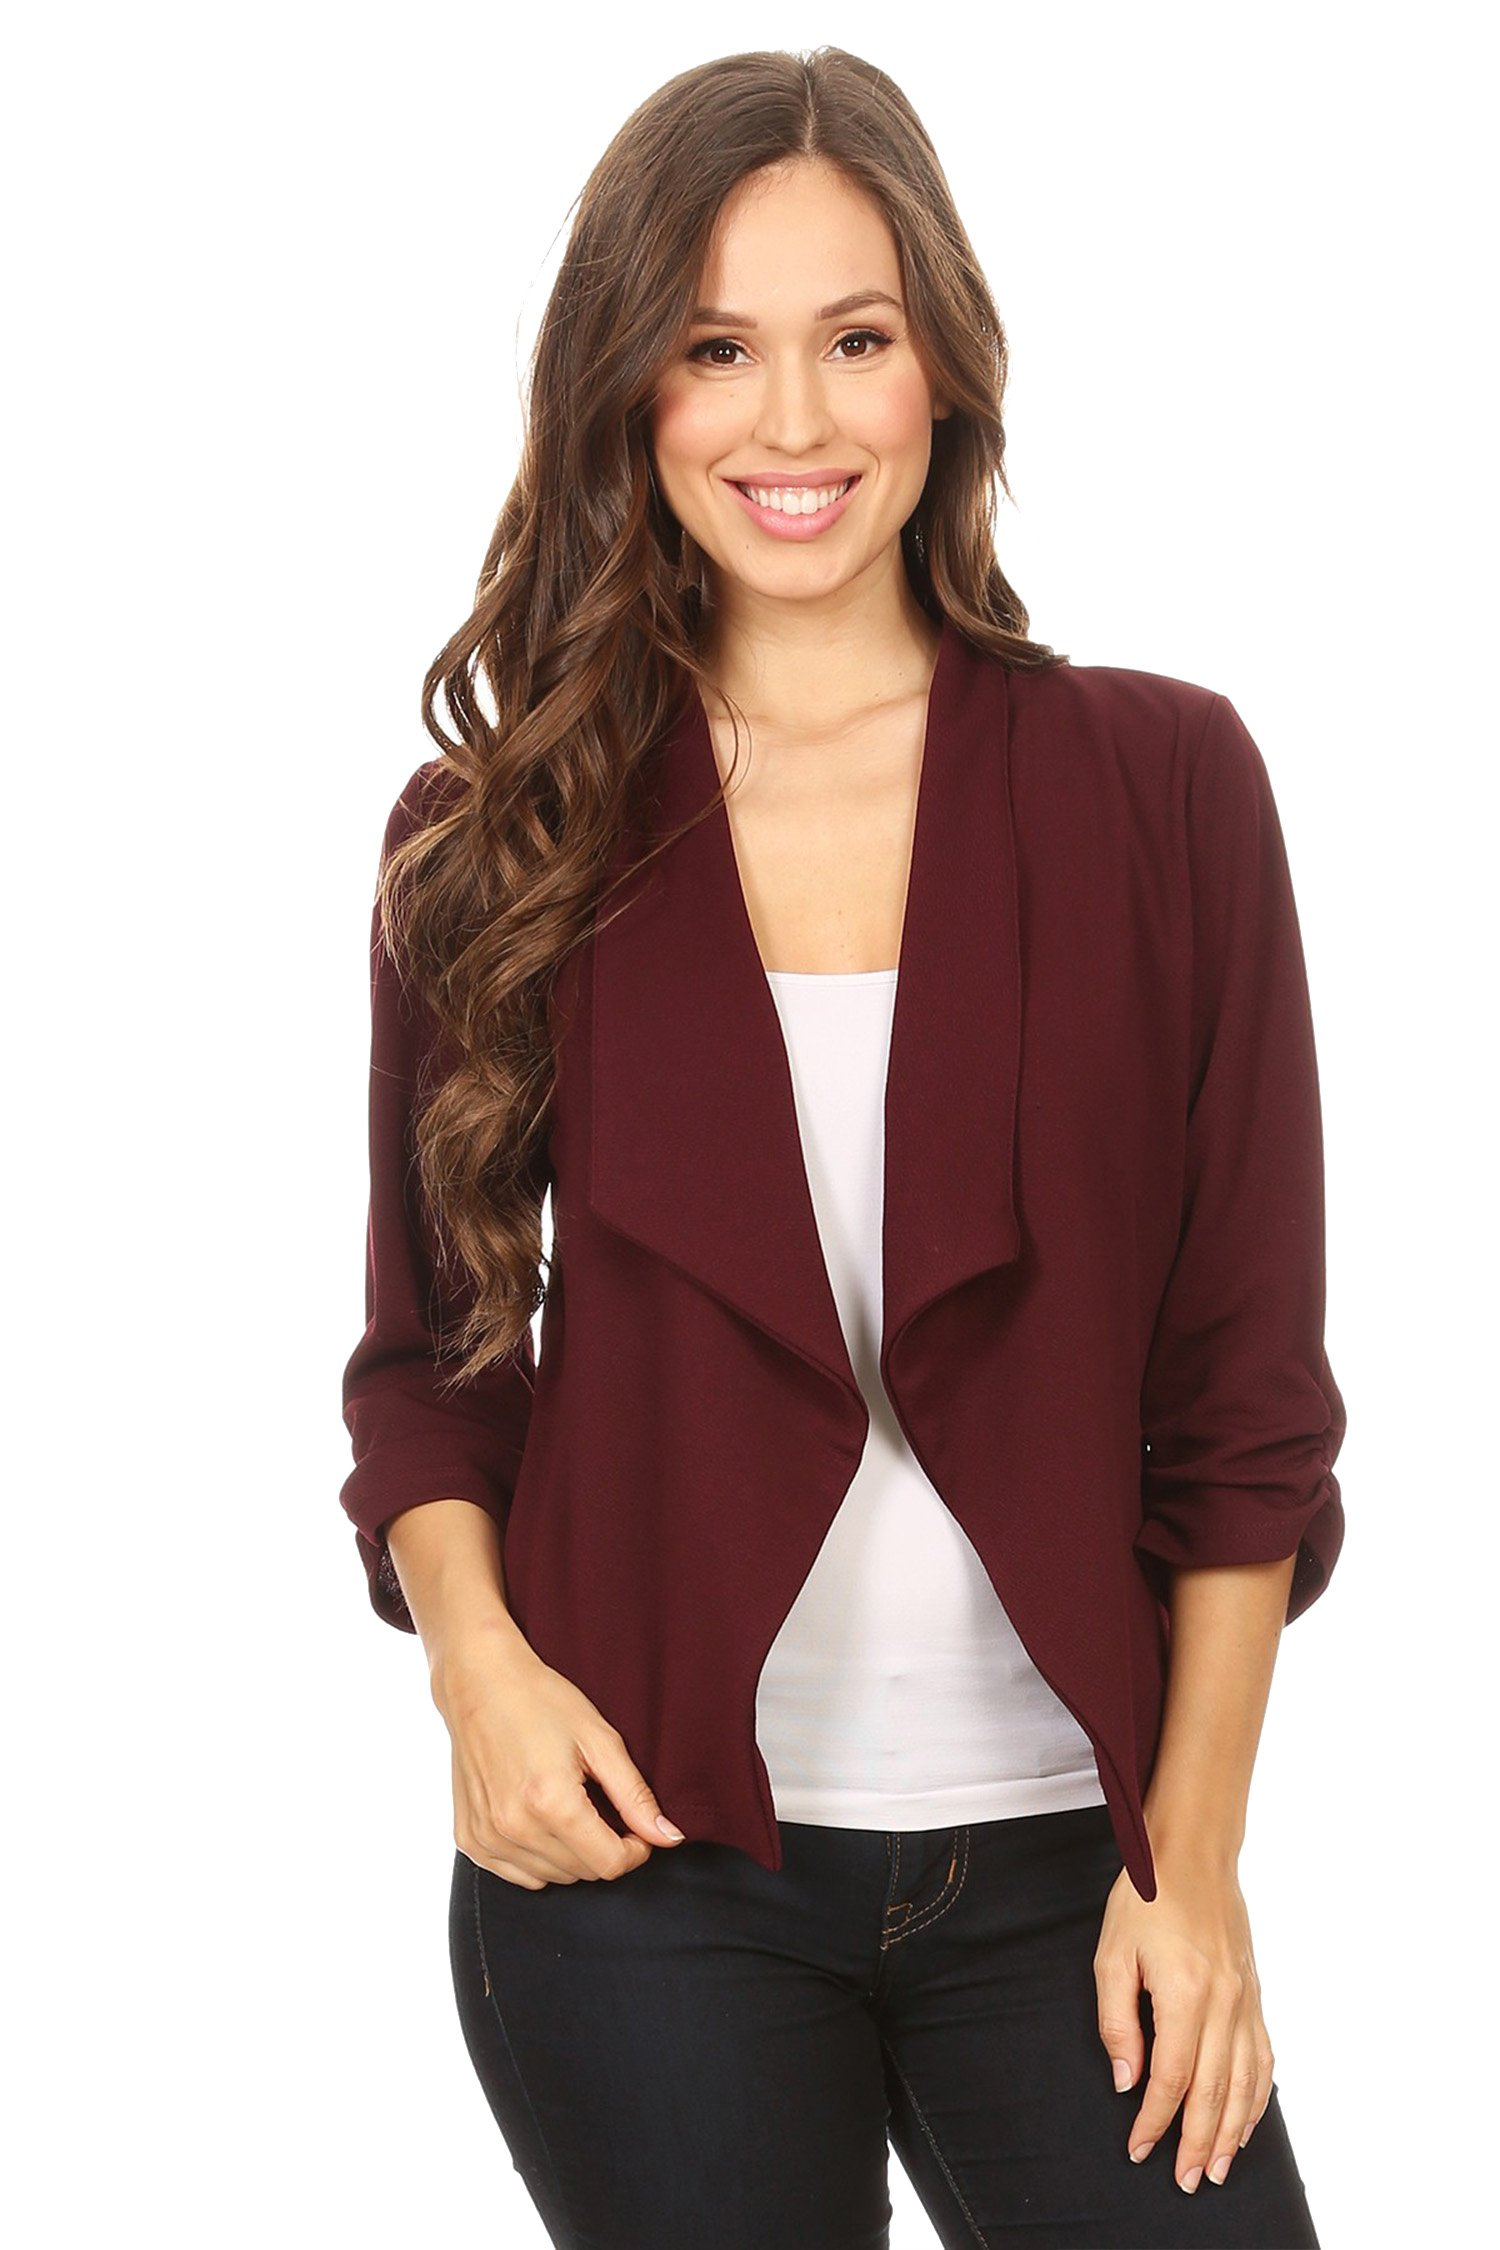 HEO CLOTHING Women's Plus/Reg Solid, Printed Open Blazer Cardigan Jacket Made in USA